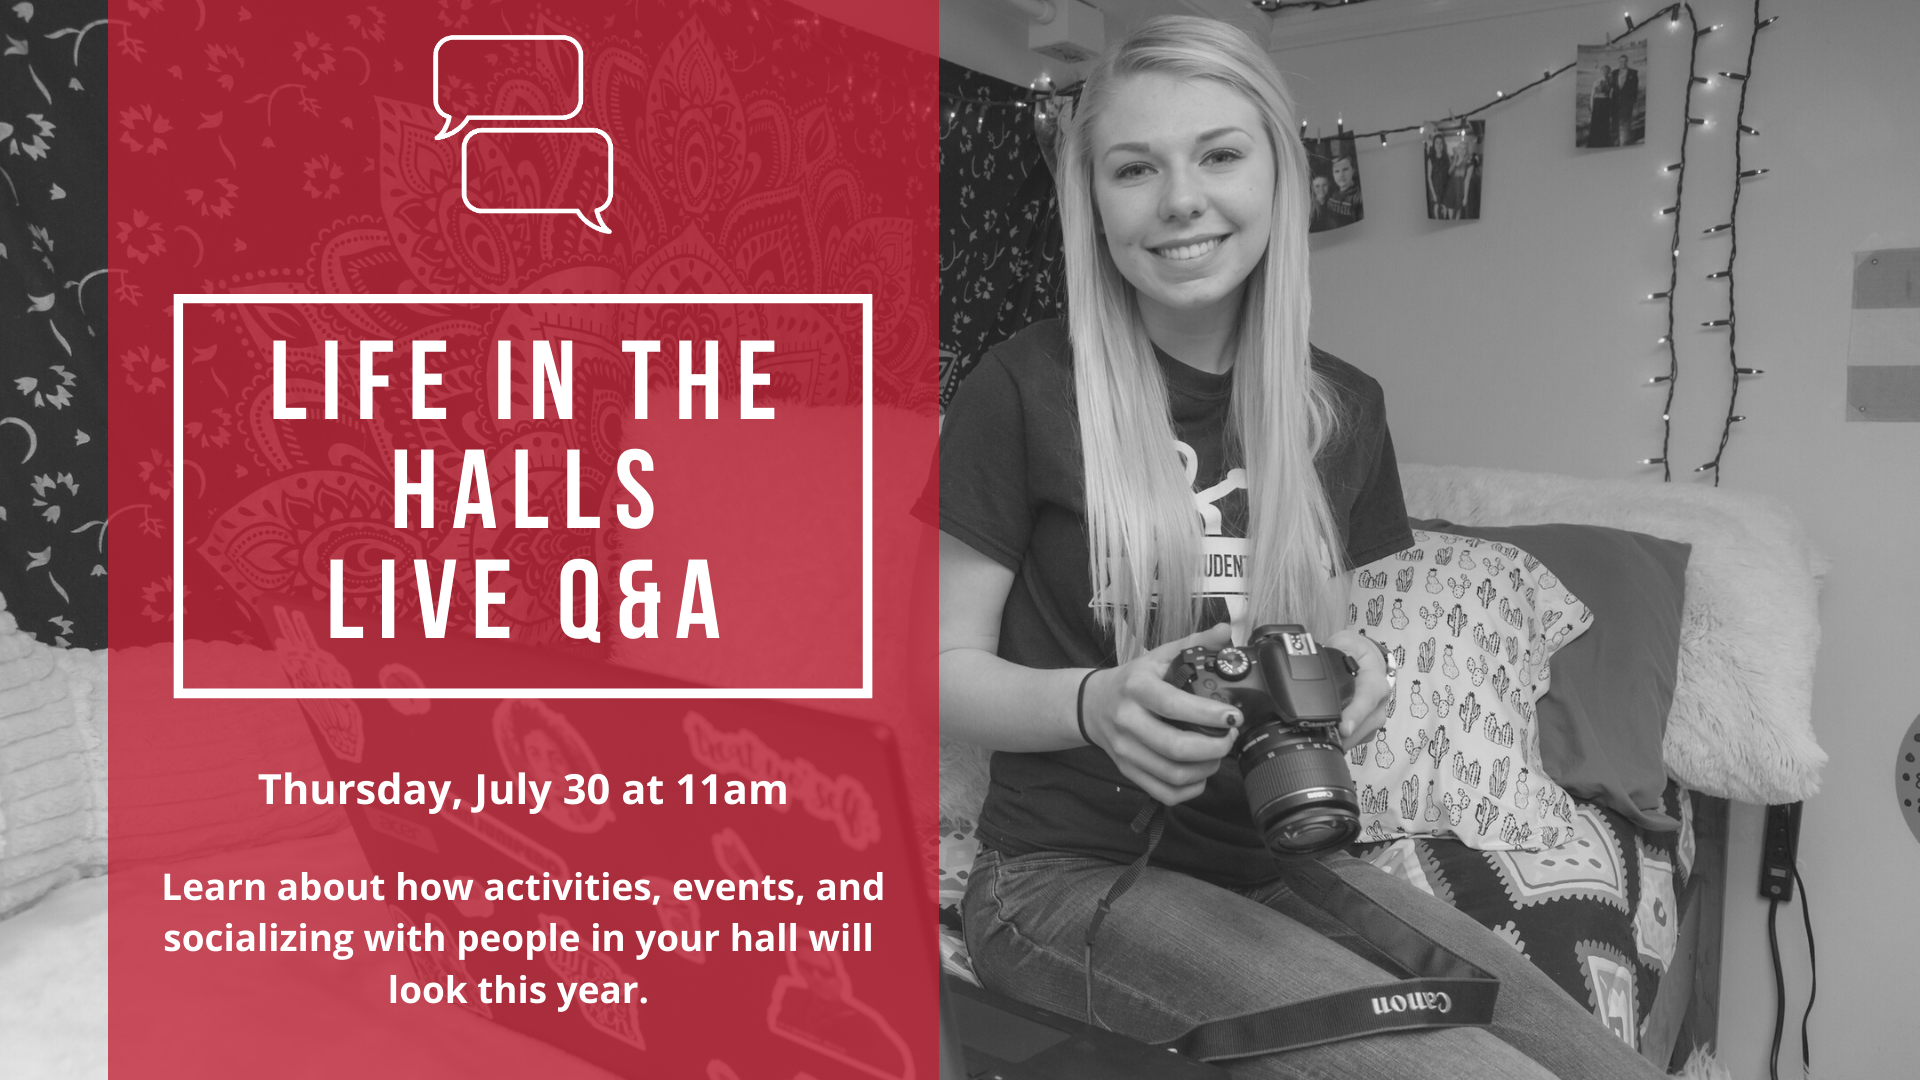 Life in the Halls Live Q&A